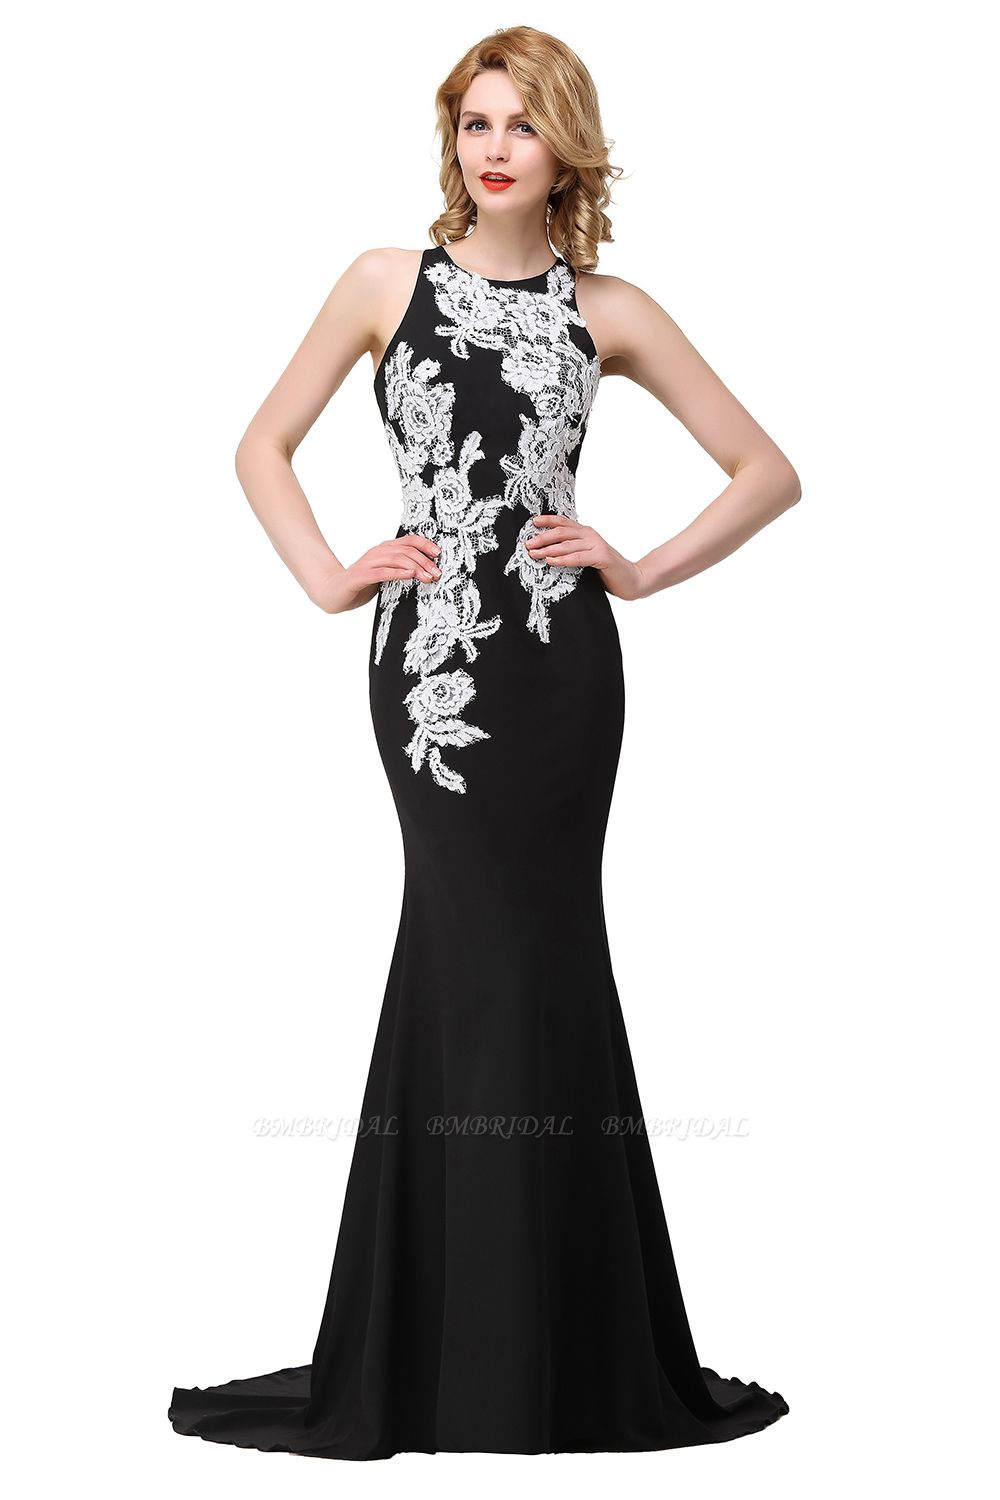 BMbridal Mermaid Evening With Appliques For Women Formal Long Prom Dress